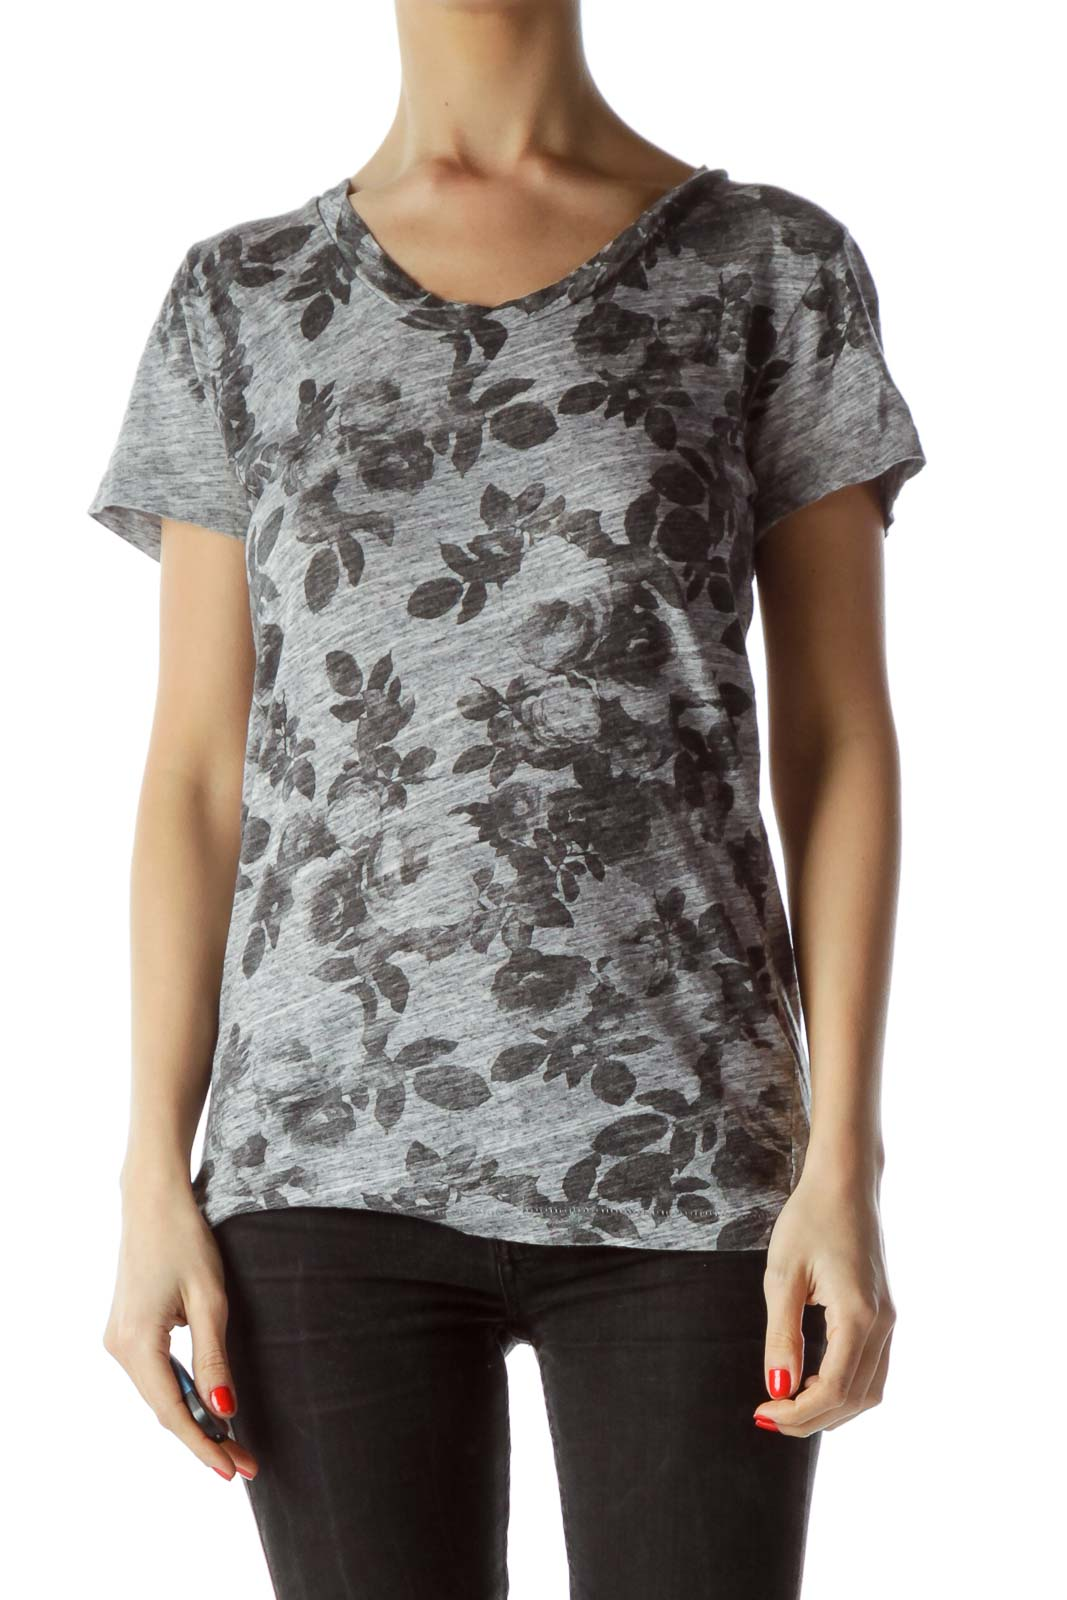 Black Gray Floral Print T-Shirt